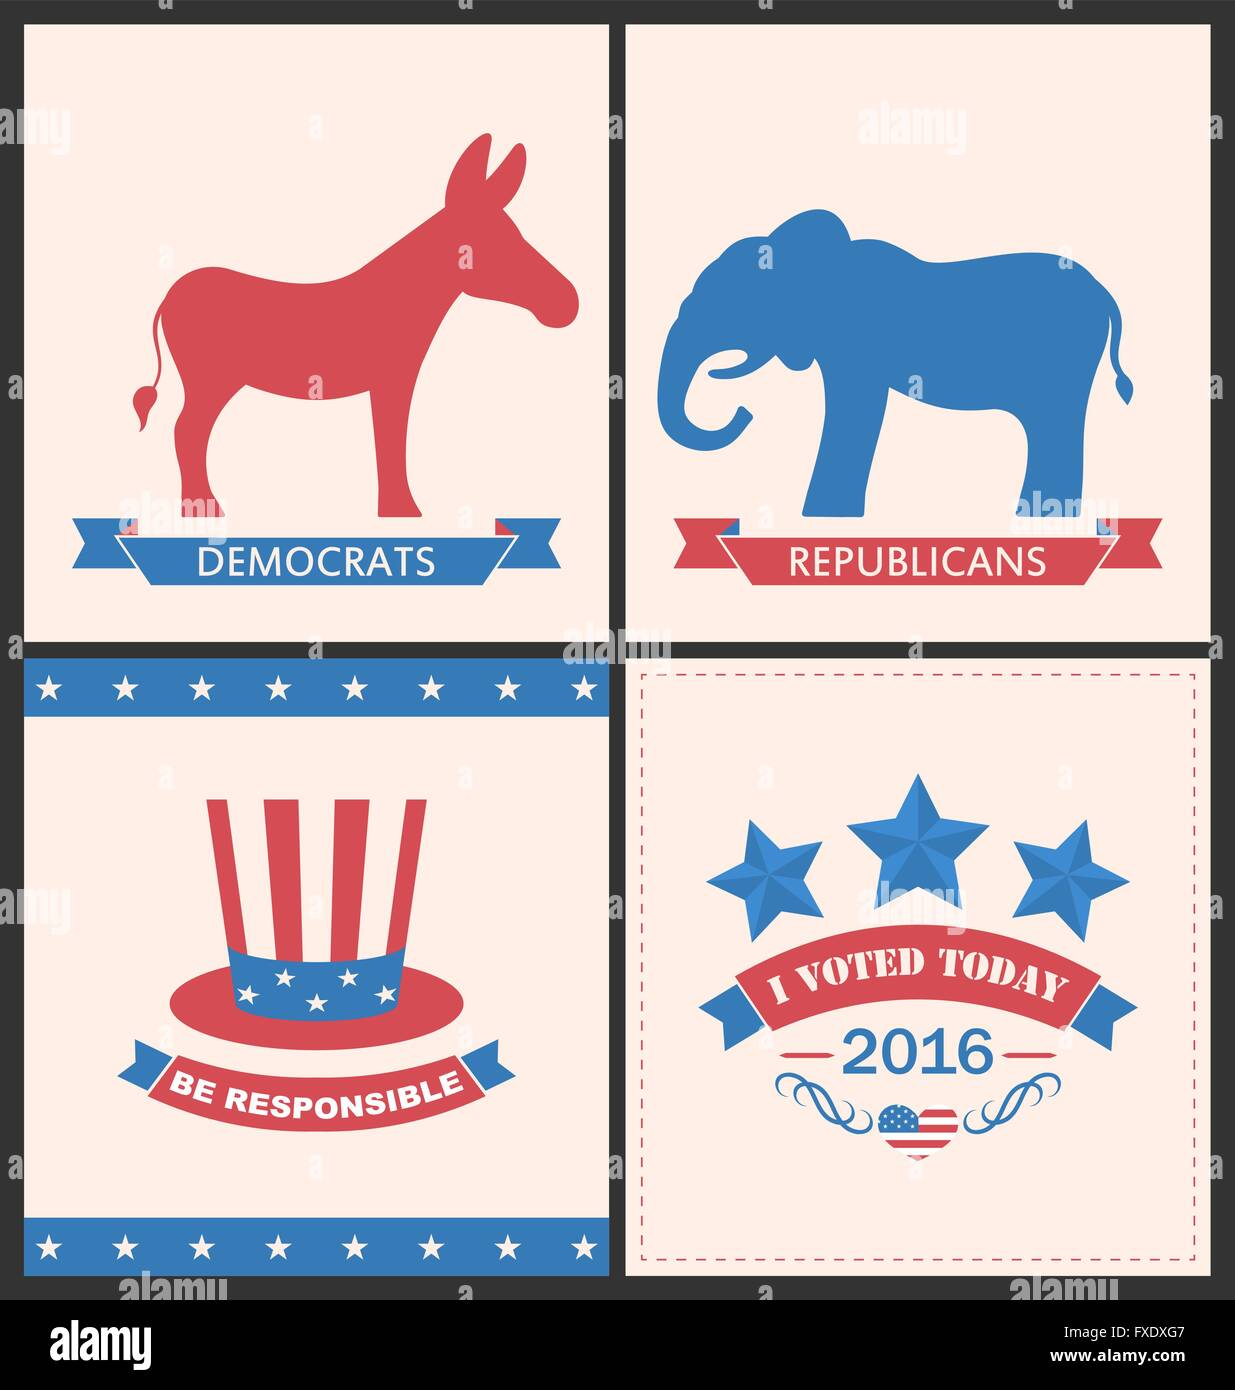 Retro Cards for Advertise of United States Political Parties - Stock Image